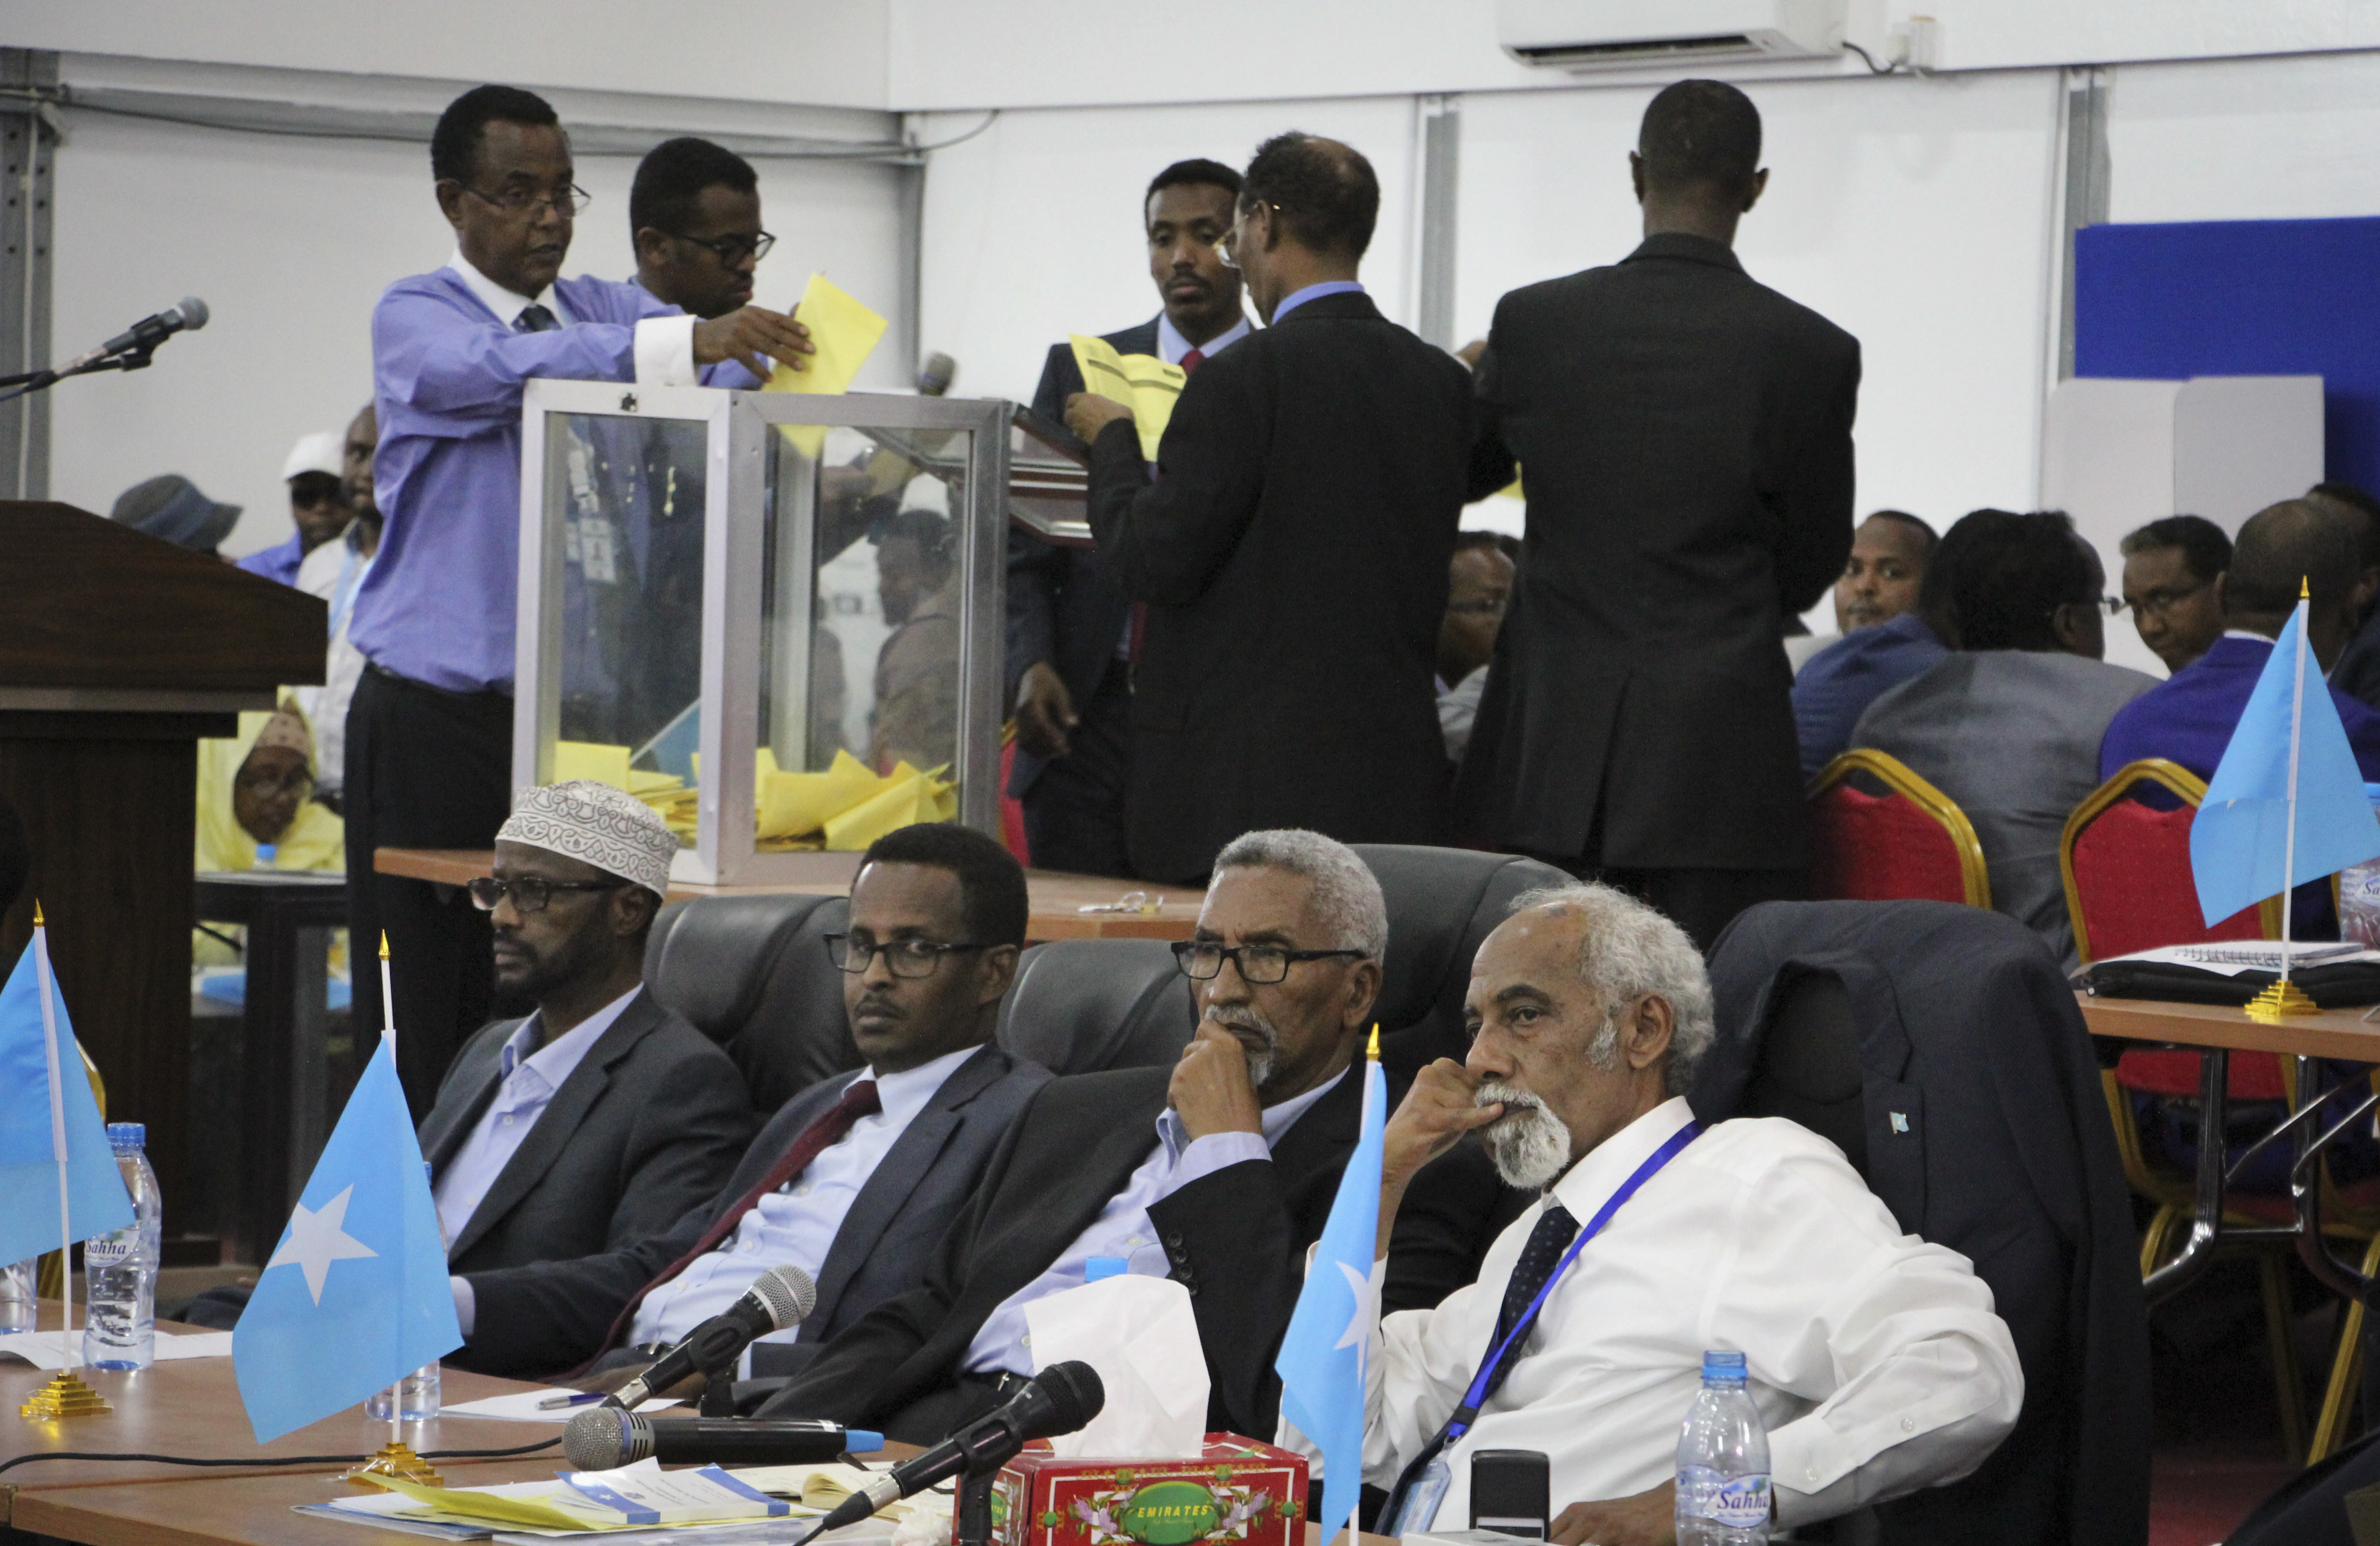 Votes are counted in the first round of the presidential election in Mogadishu, Somalia on Feb. 8, 2017. (AP Photo/Farah Abdi Warsameh)